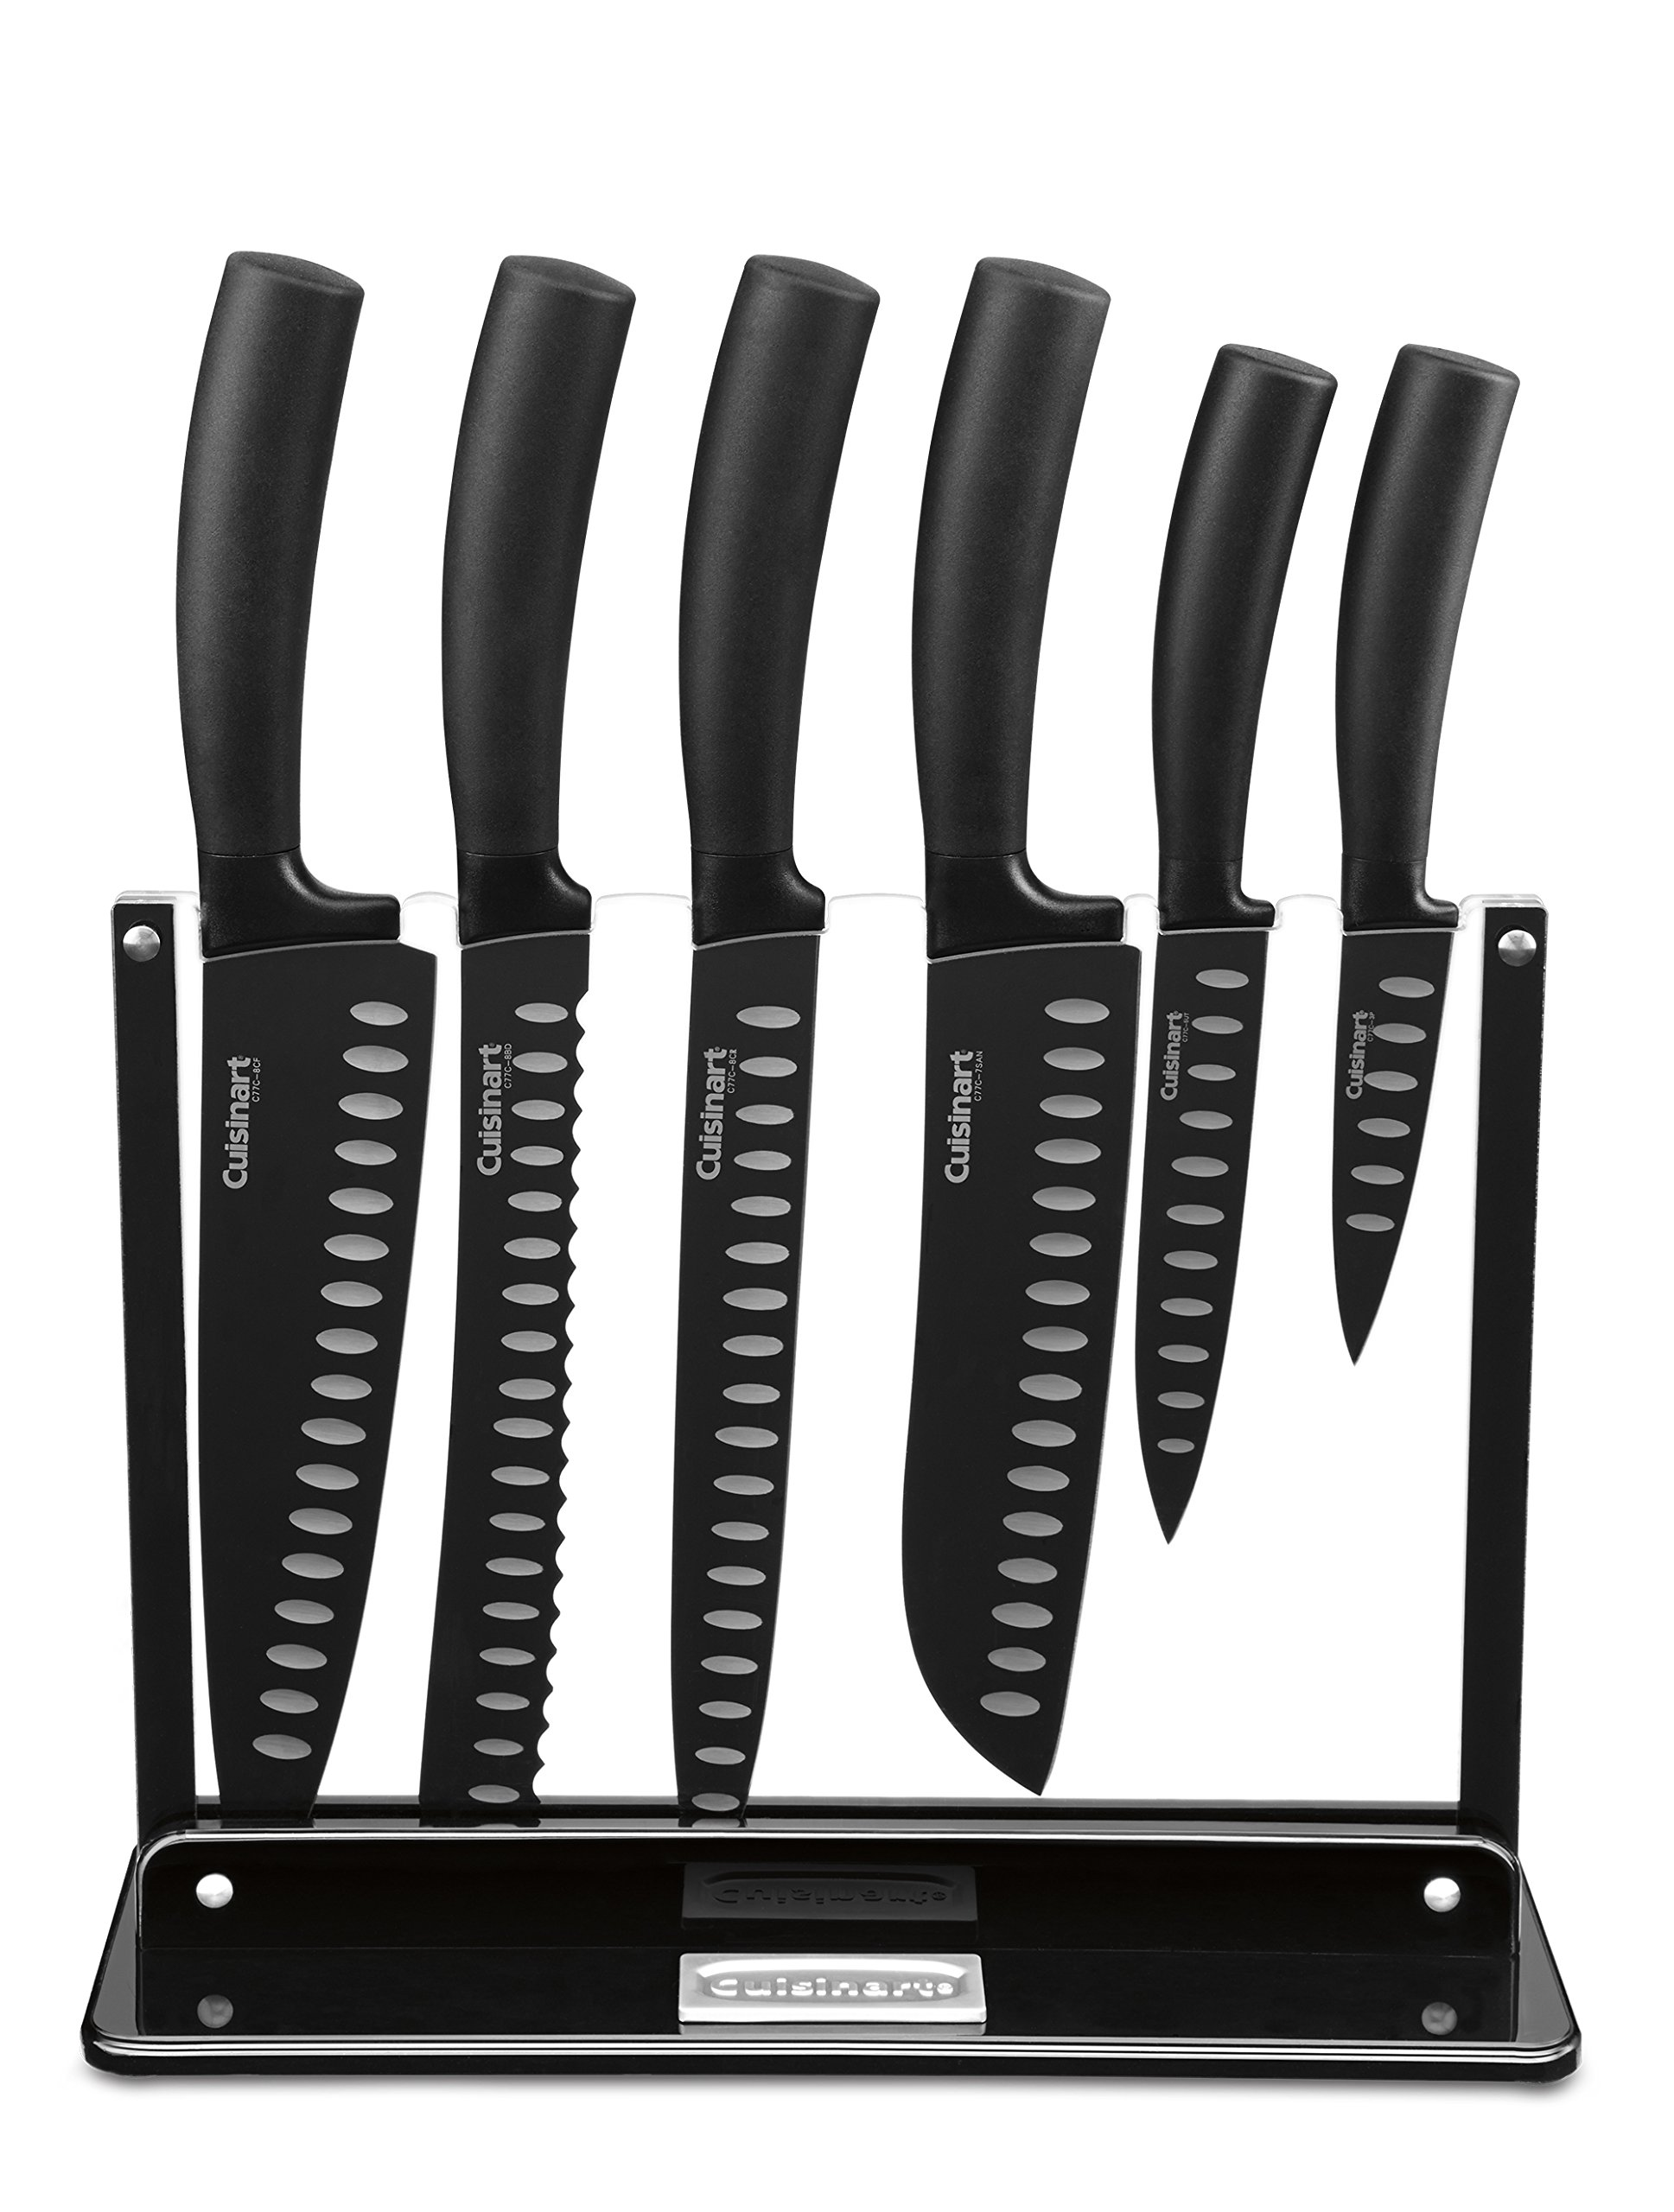 Cuisinart C77NS-7P Classic Nonstick Edge Collection 7-Piece Cutlery Knife Set with Acrylic Stand, Black by Cuisinart